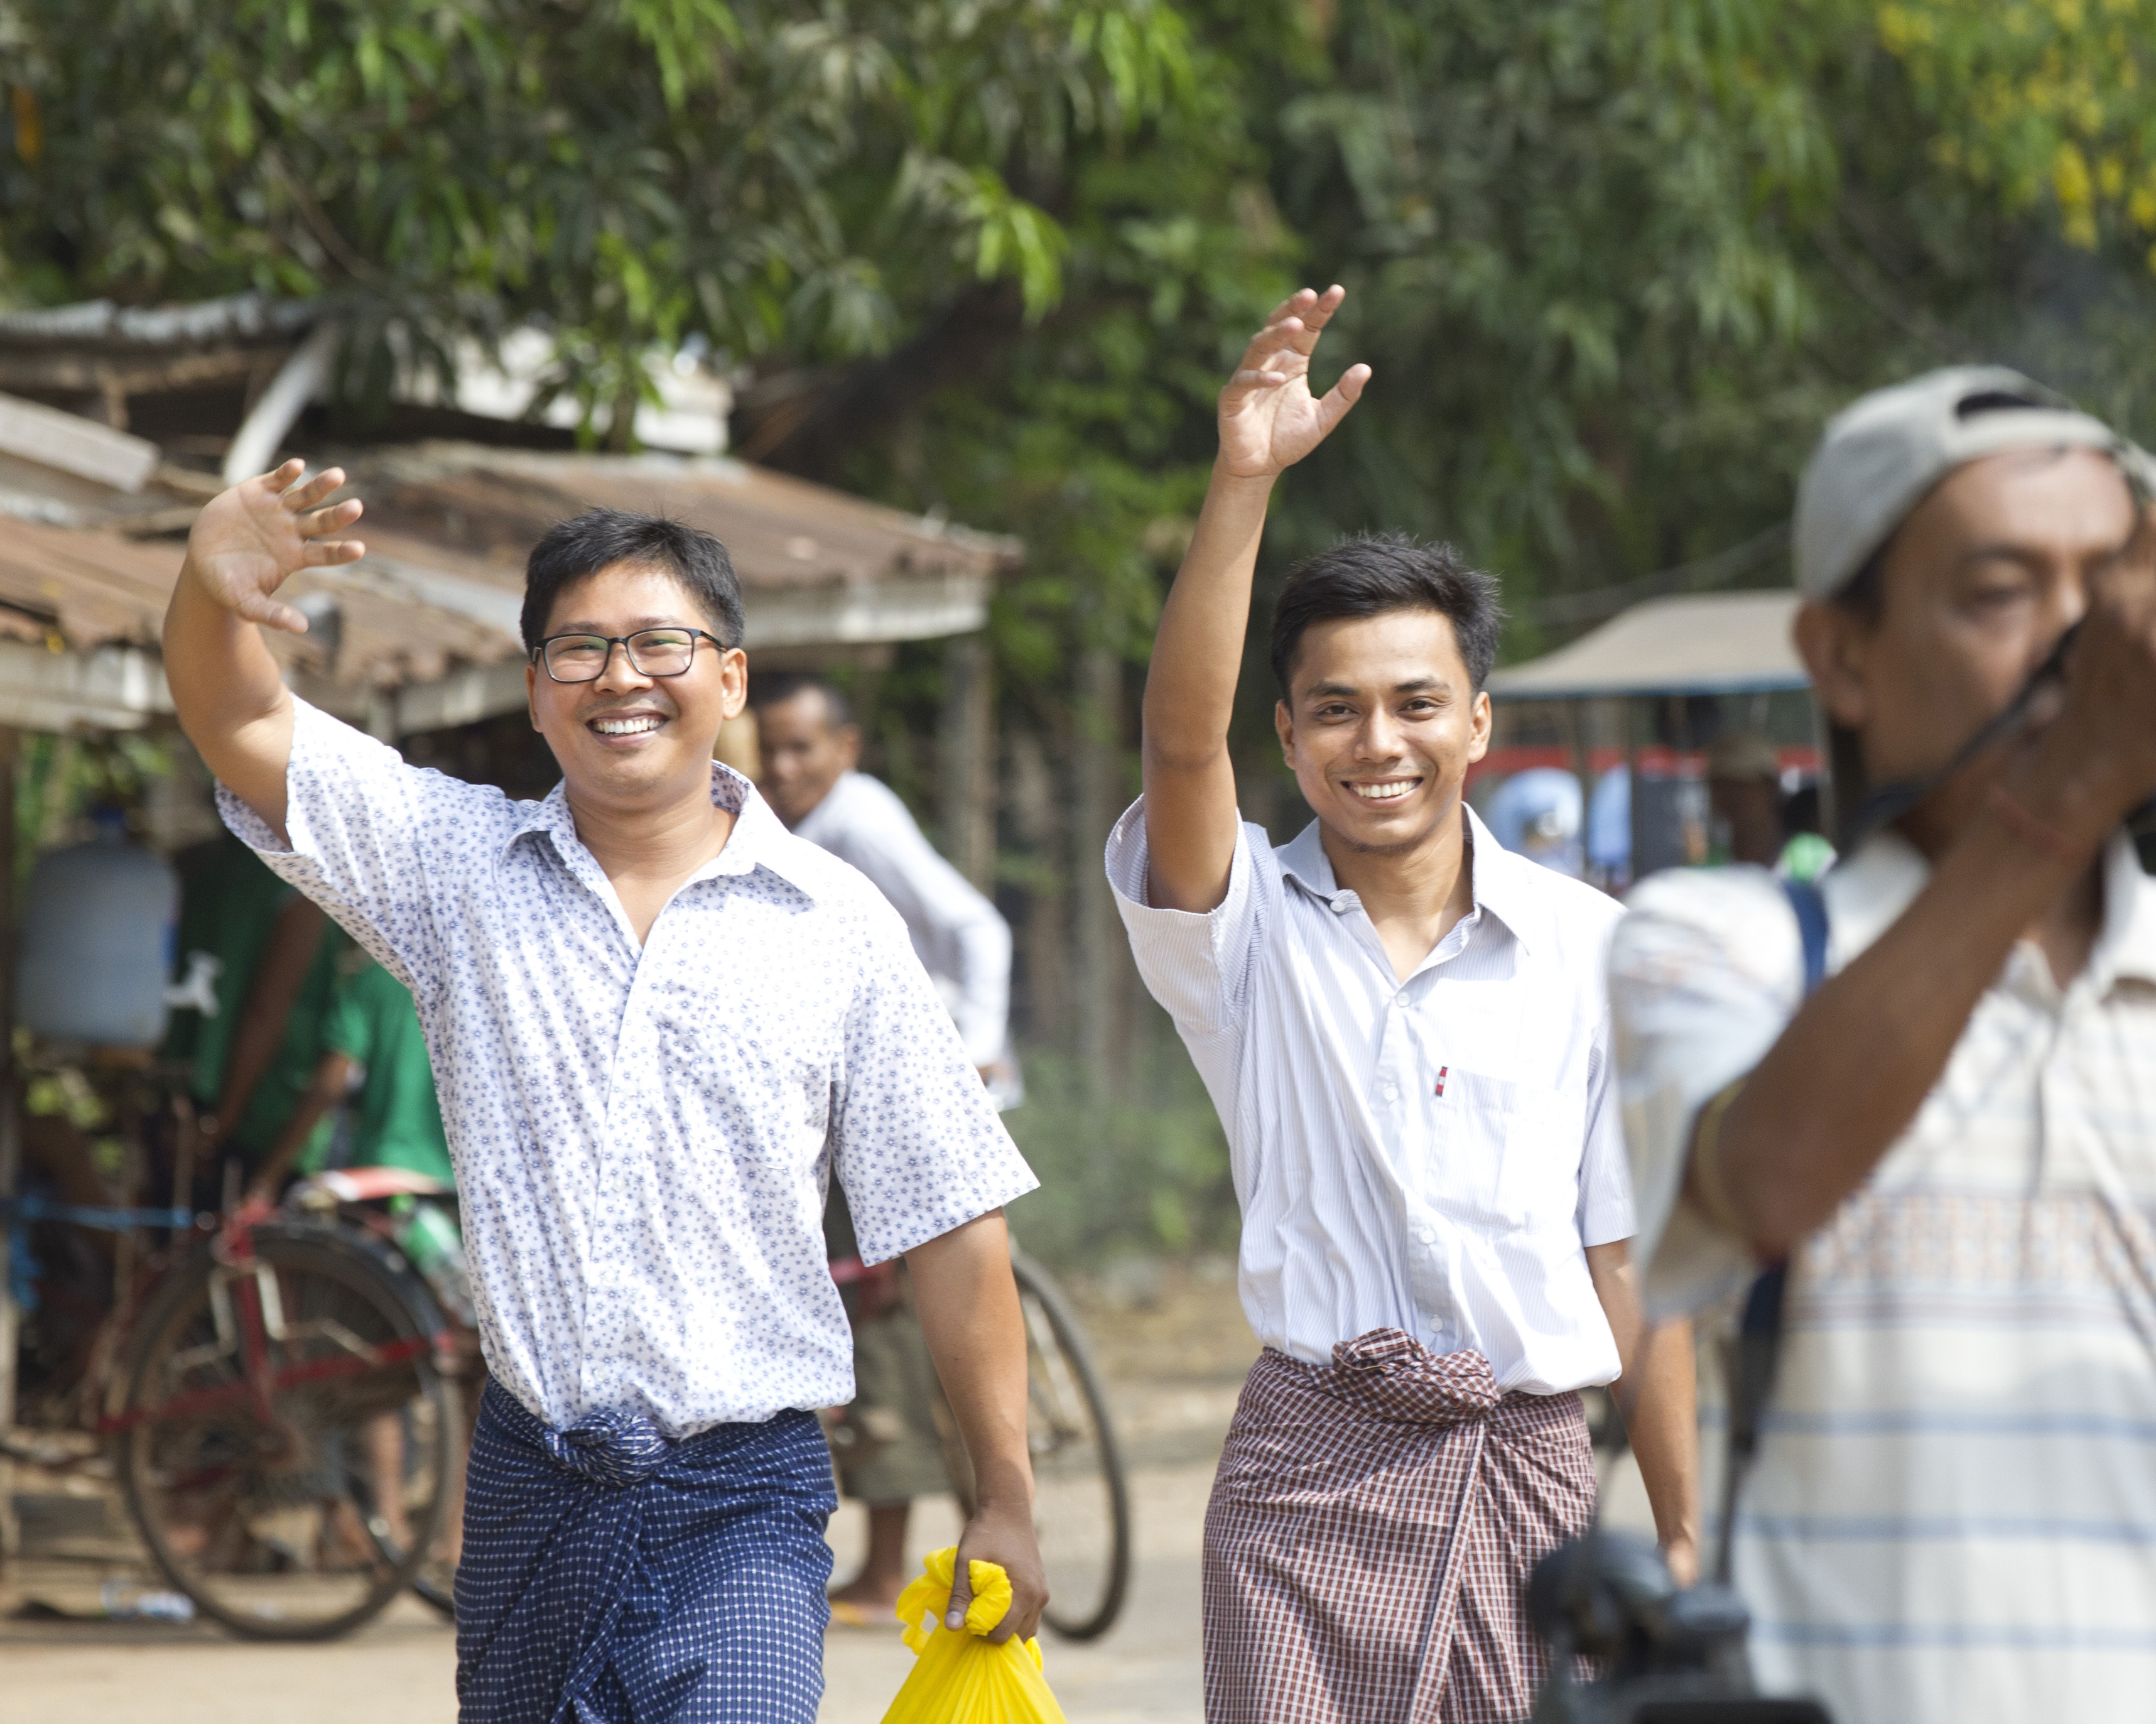 Reuters journalists Wa Lone, left, and Kyaw Soe Oo, right, wave as they walk out from Insein Prison after being released in Yangon, Myanmar on May 7, 2019.